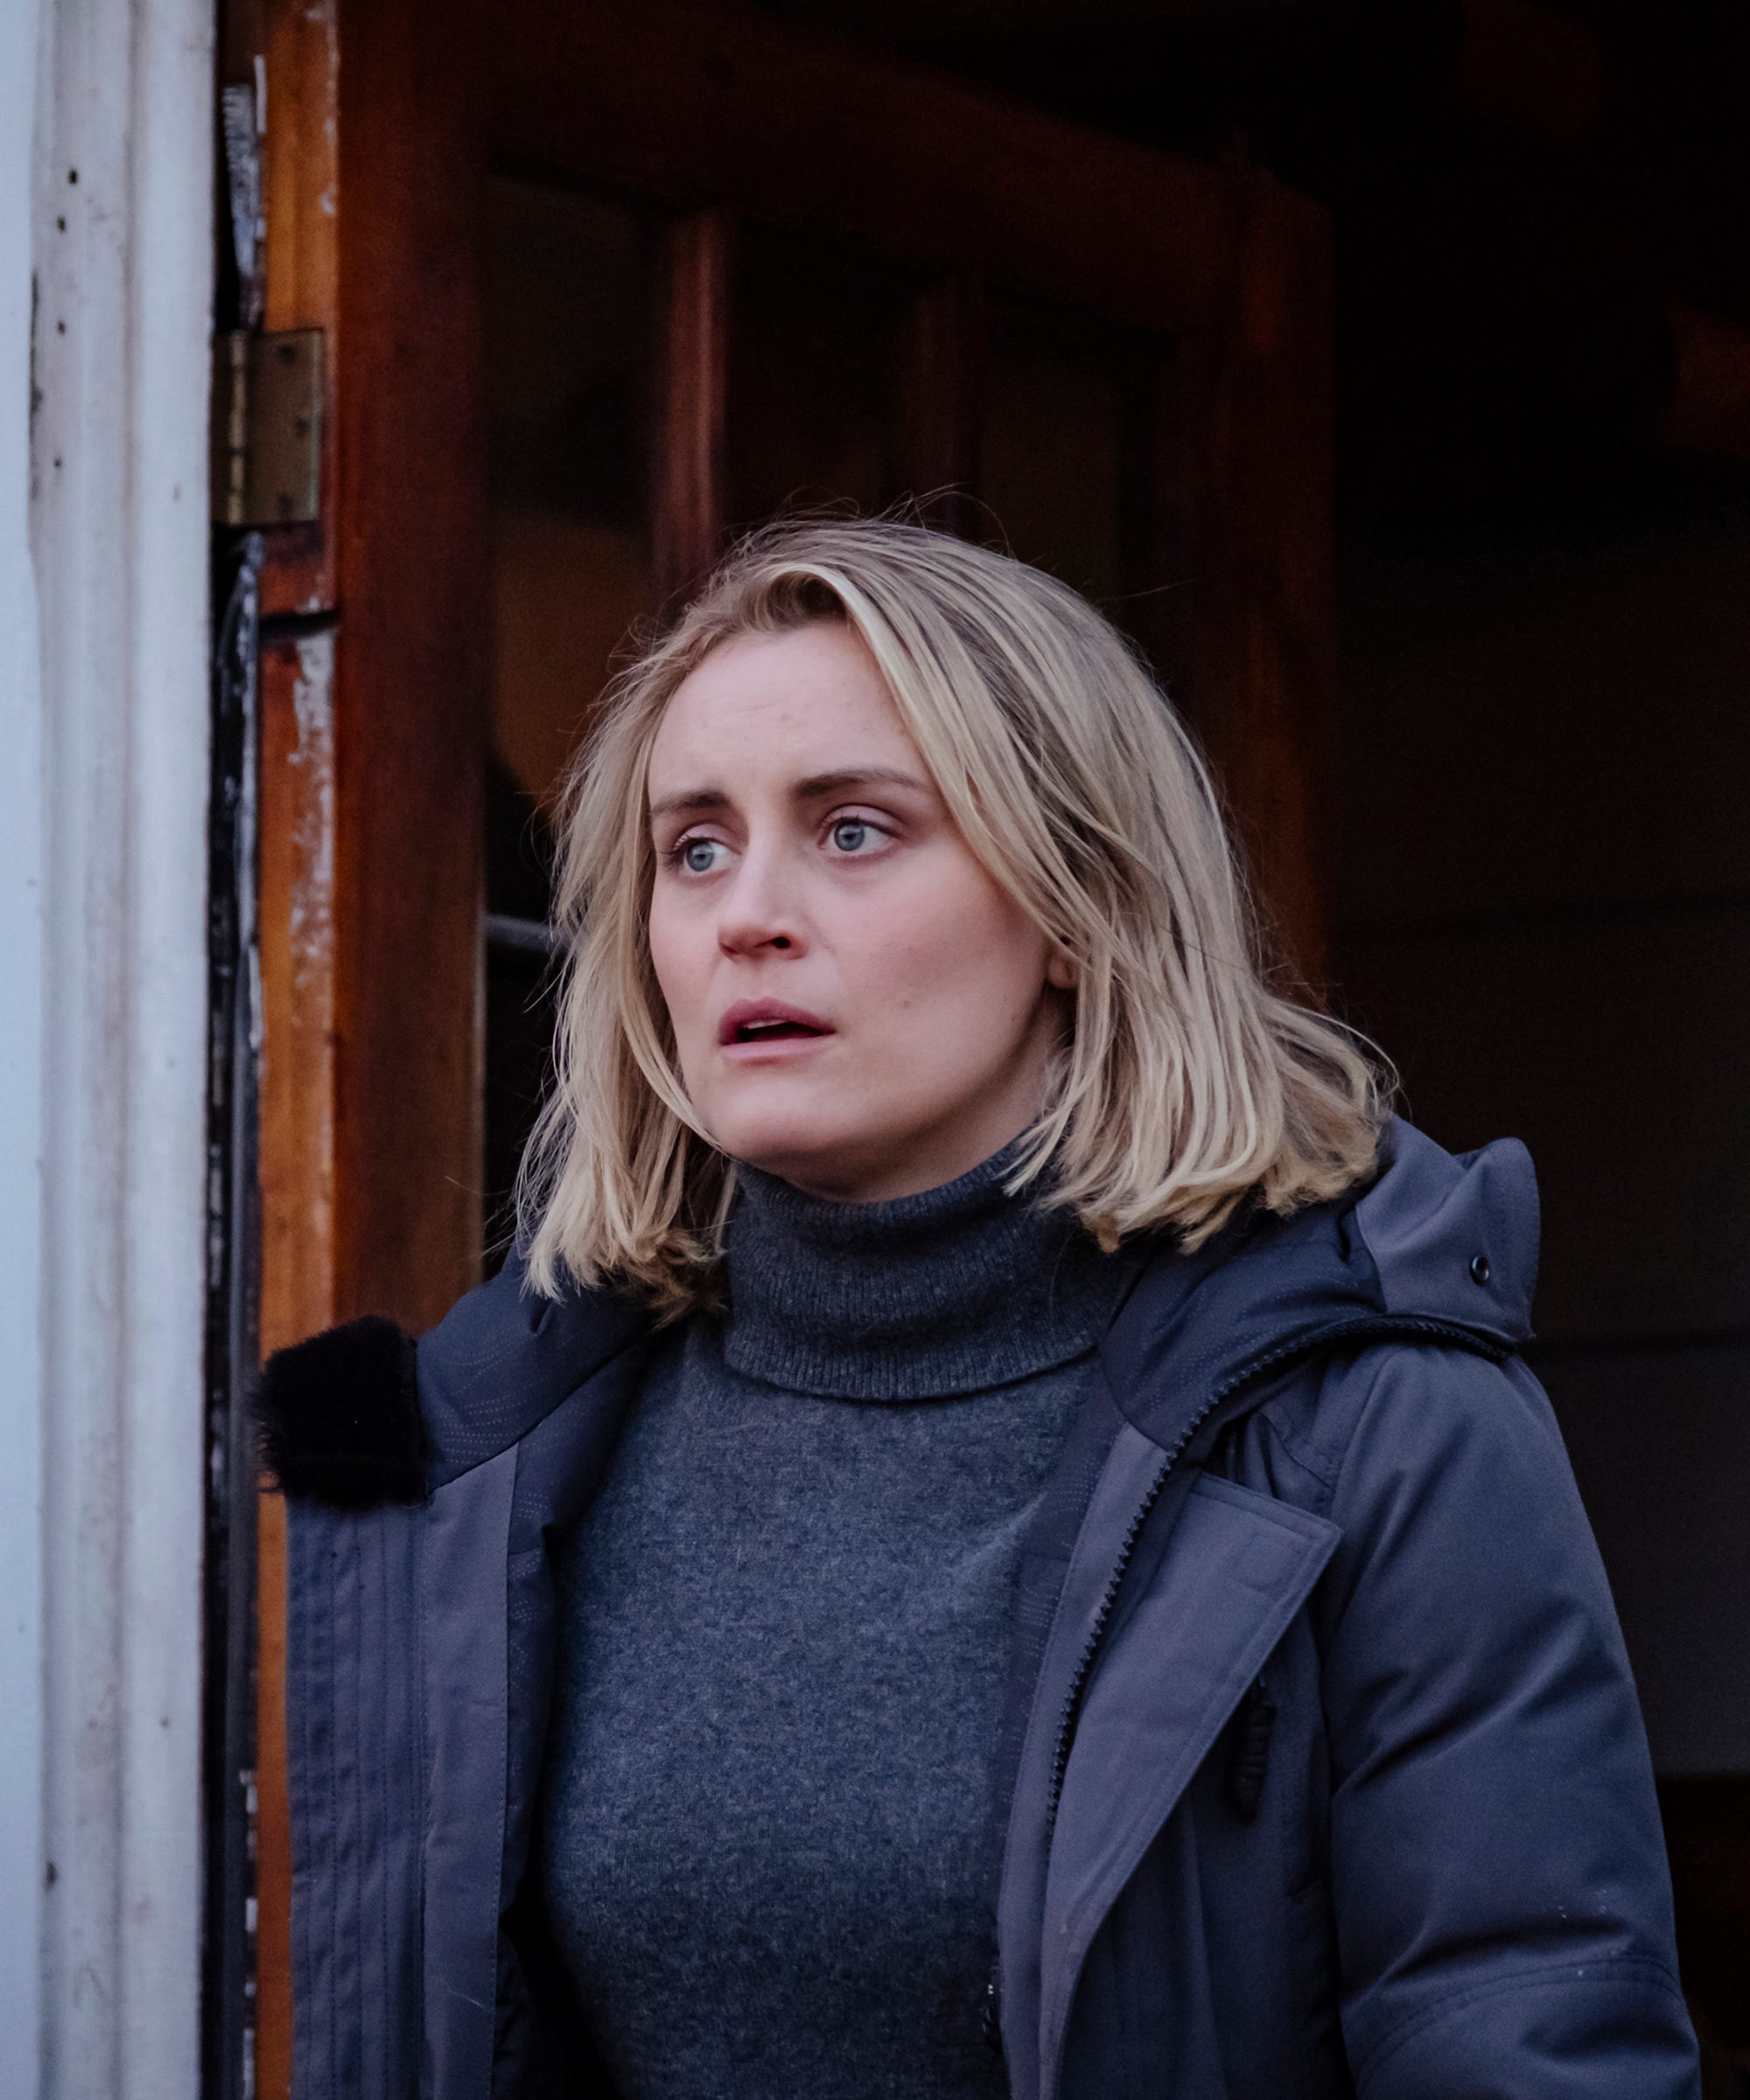 The Prodigy Horror Movie Trailer, Taylor Schilling